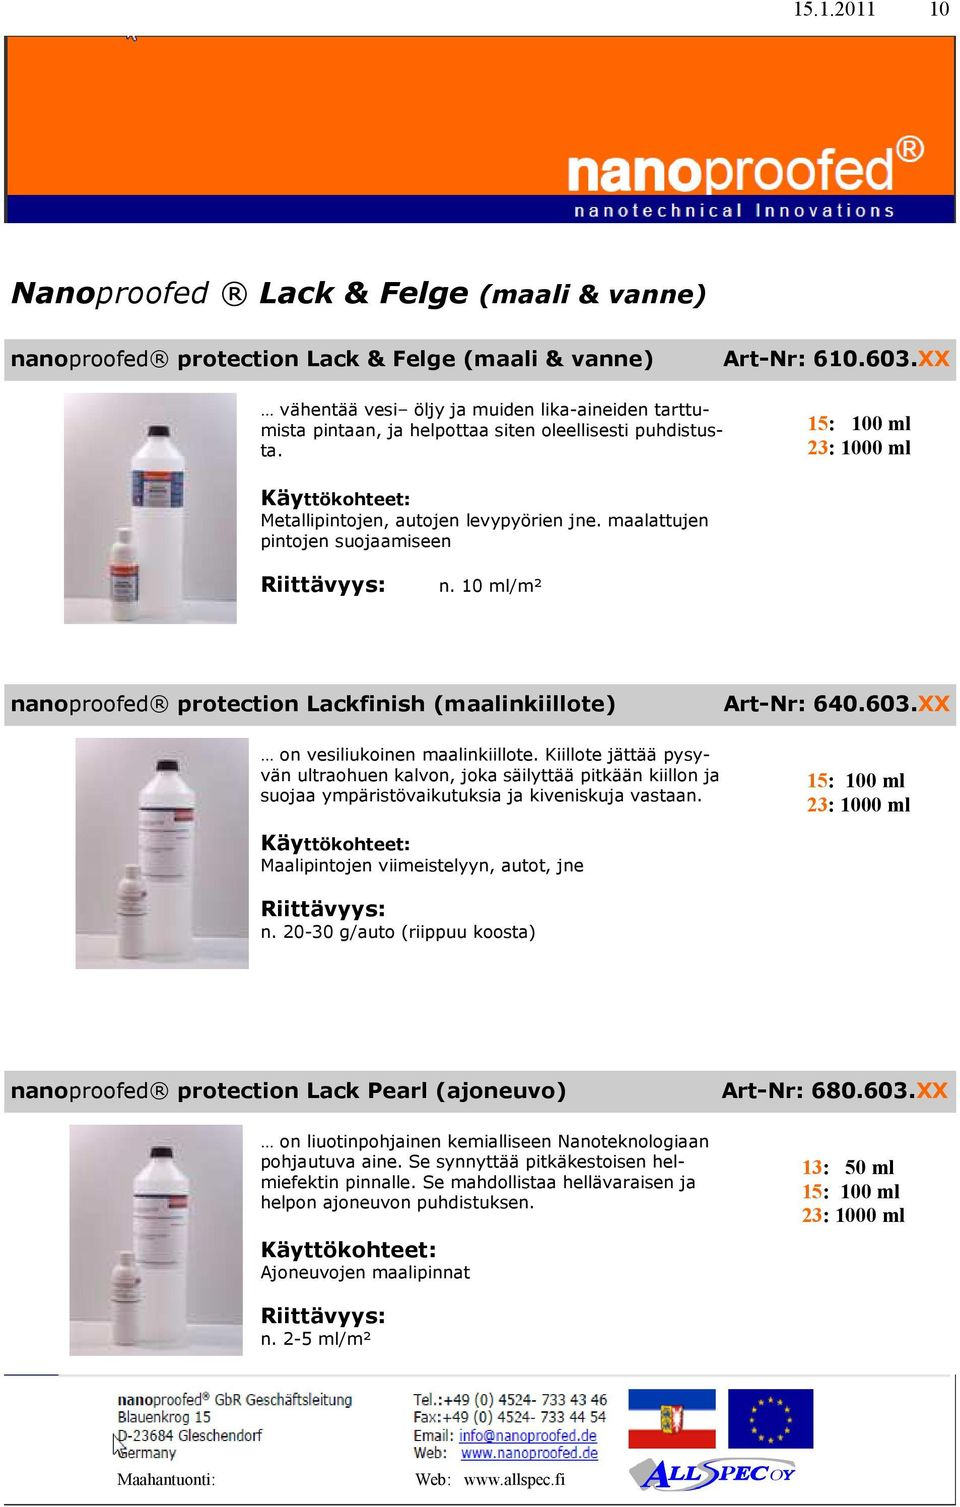 10 ml/m² nanoproofed protection Lackfinish (maalinkiillote) Art-Nr: 640.603.XX on vesiliukoinen maalinkiillote.